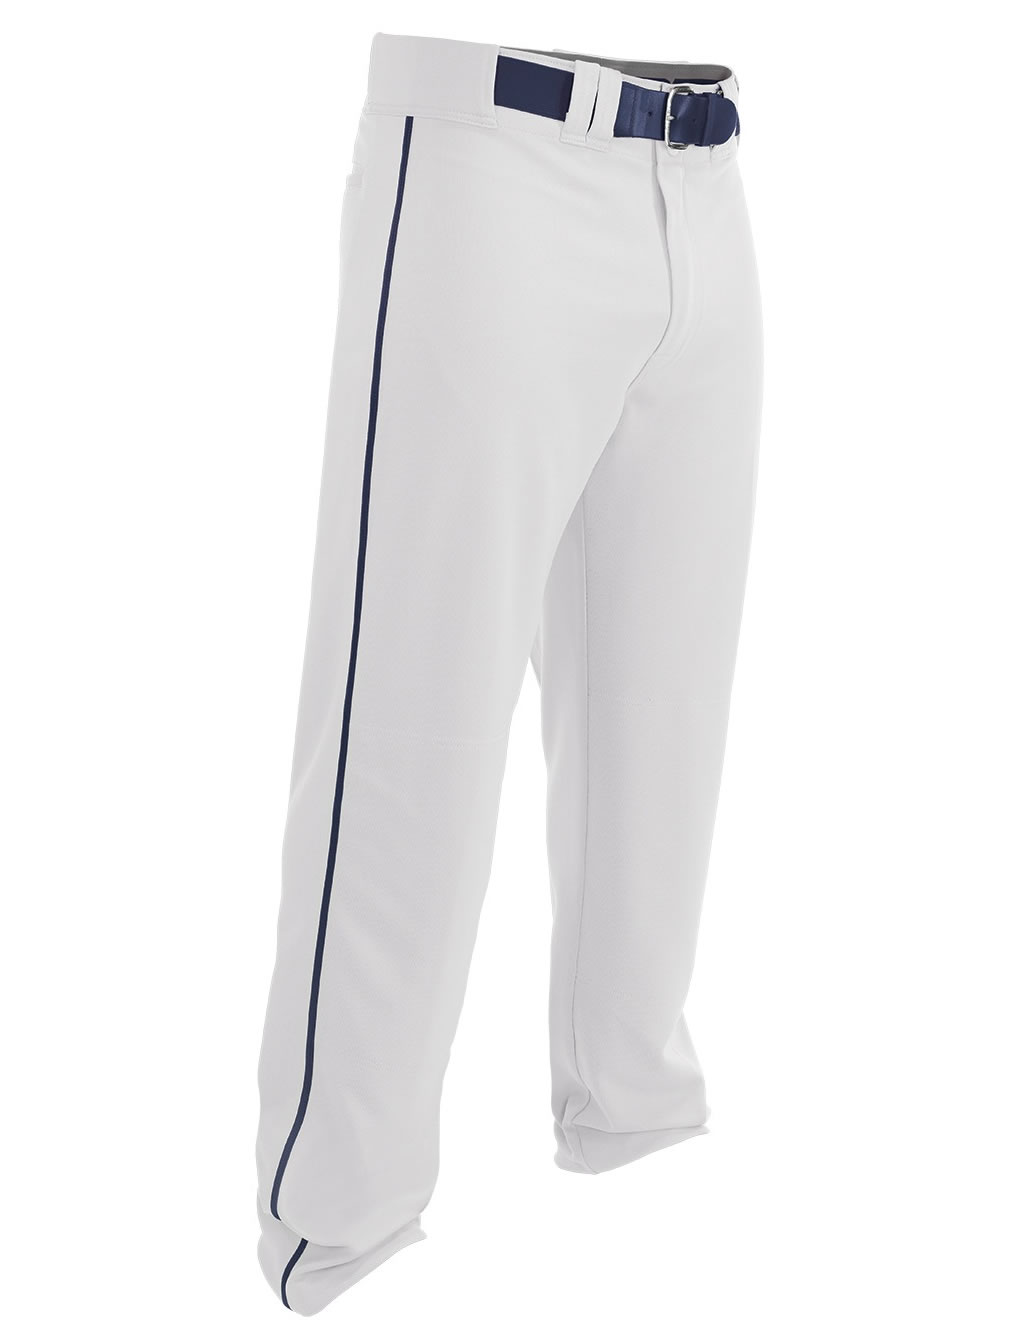 White Rival 2 Youth Baseball Pant by Easton